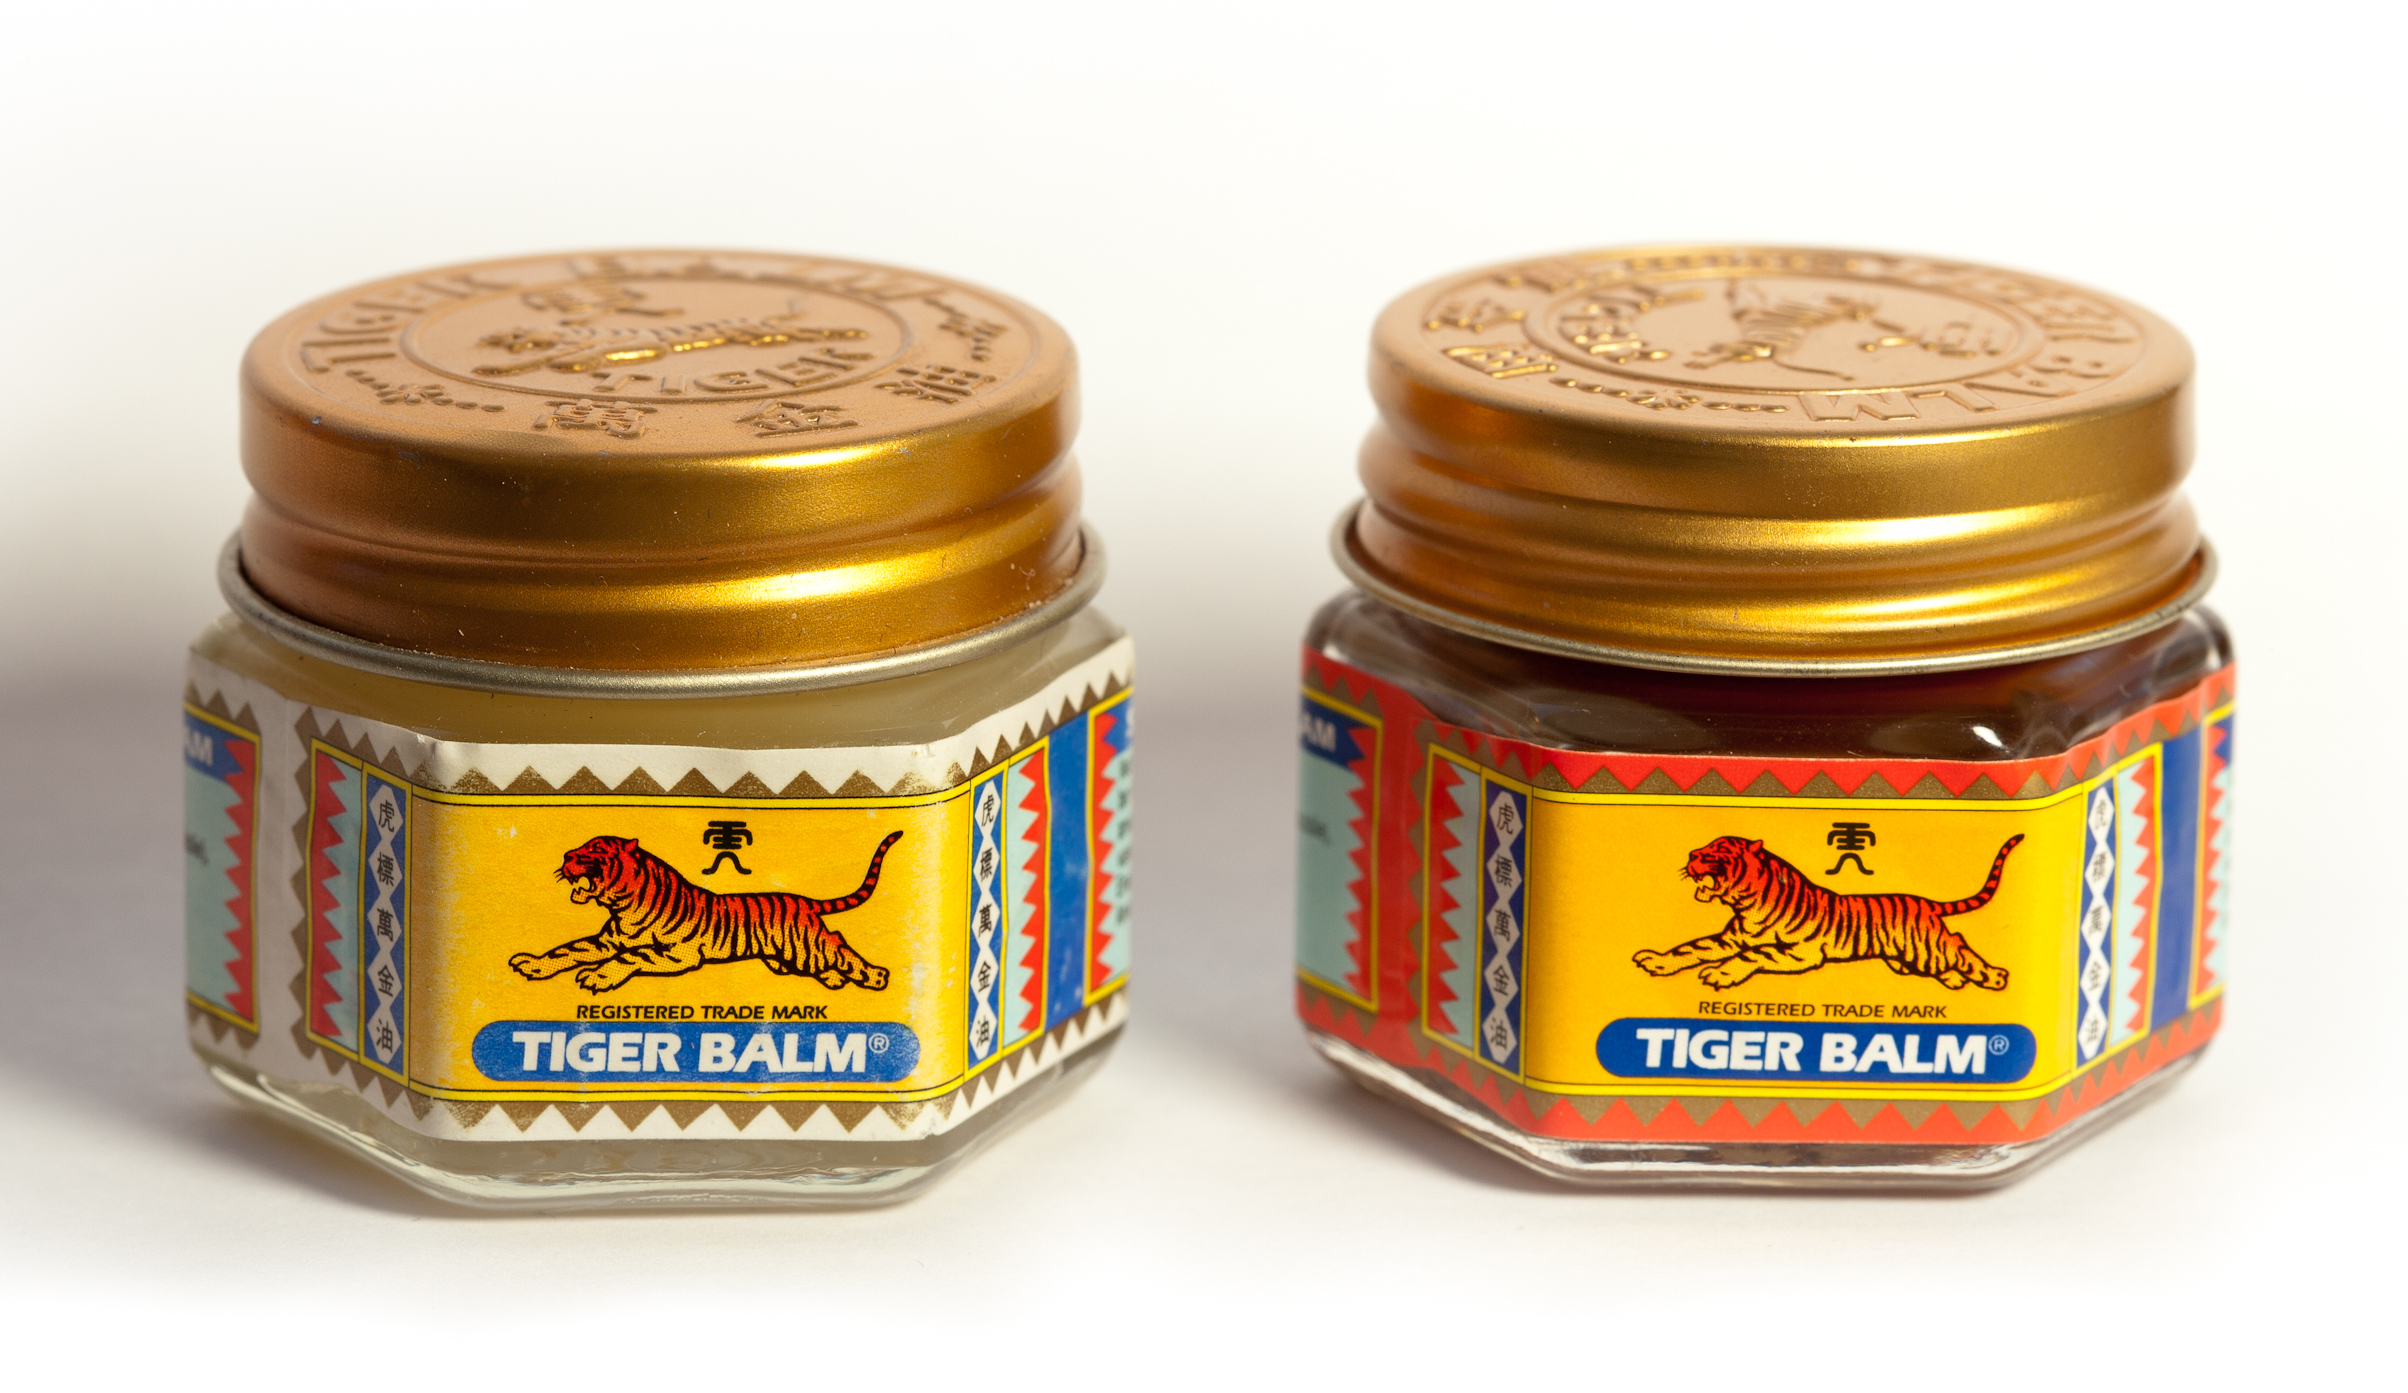 Tiger Balm for meditation and help opening Pineal Gland photo by Steffen Buus Kristensen